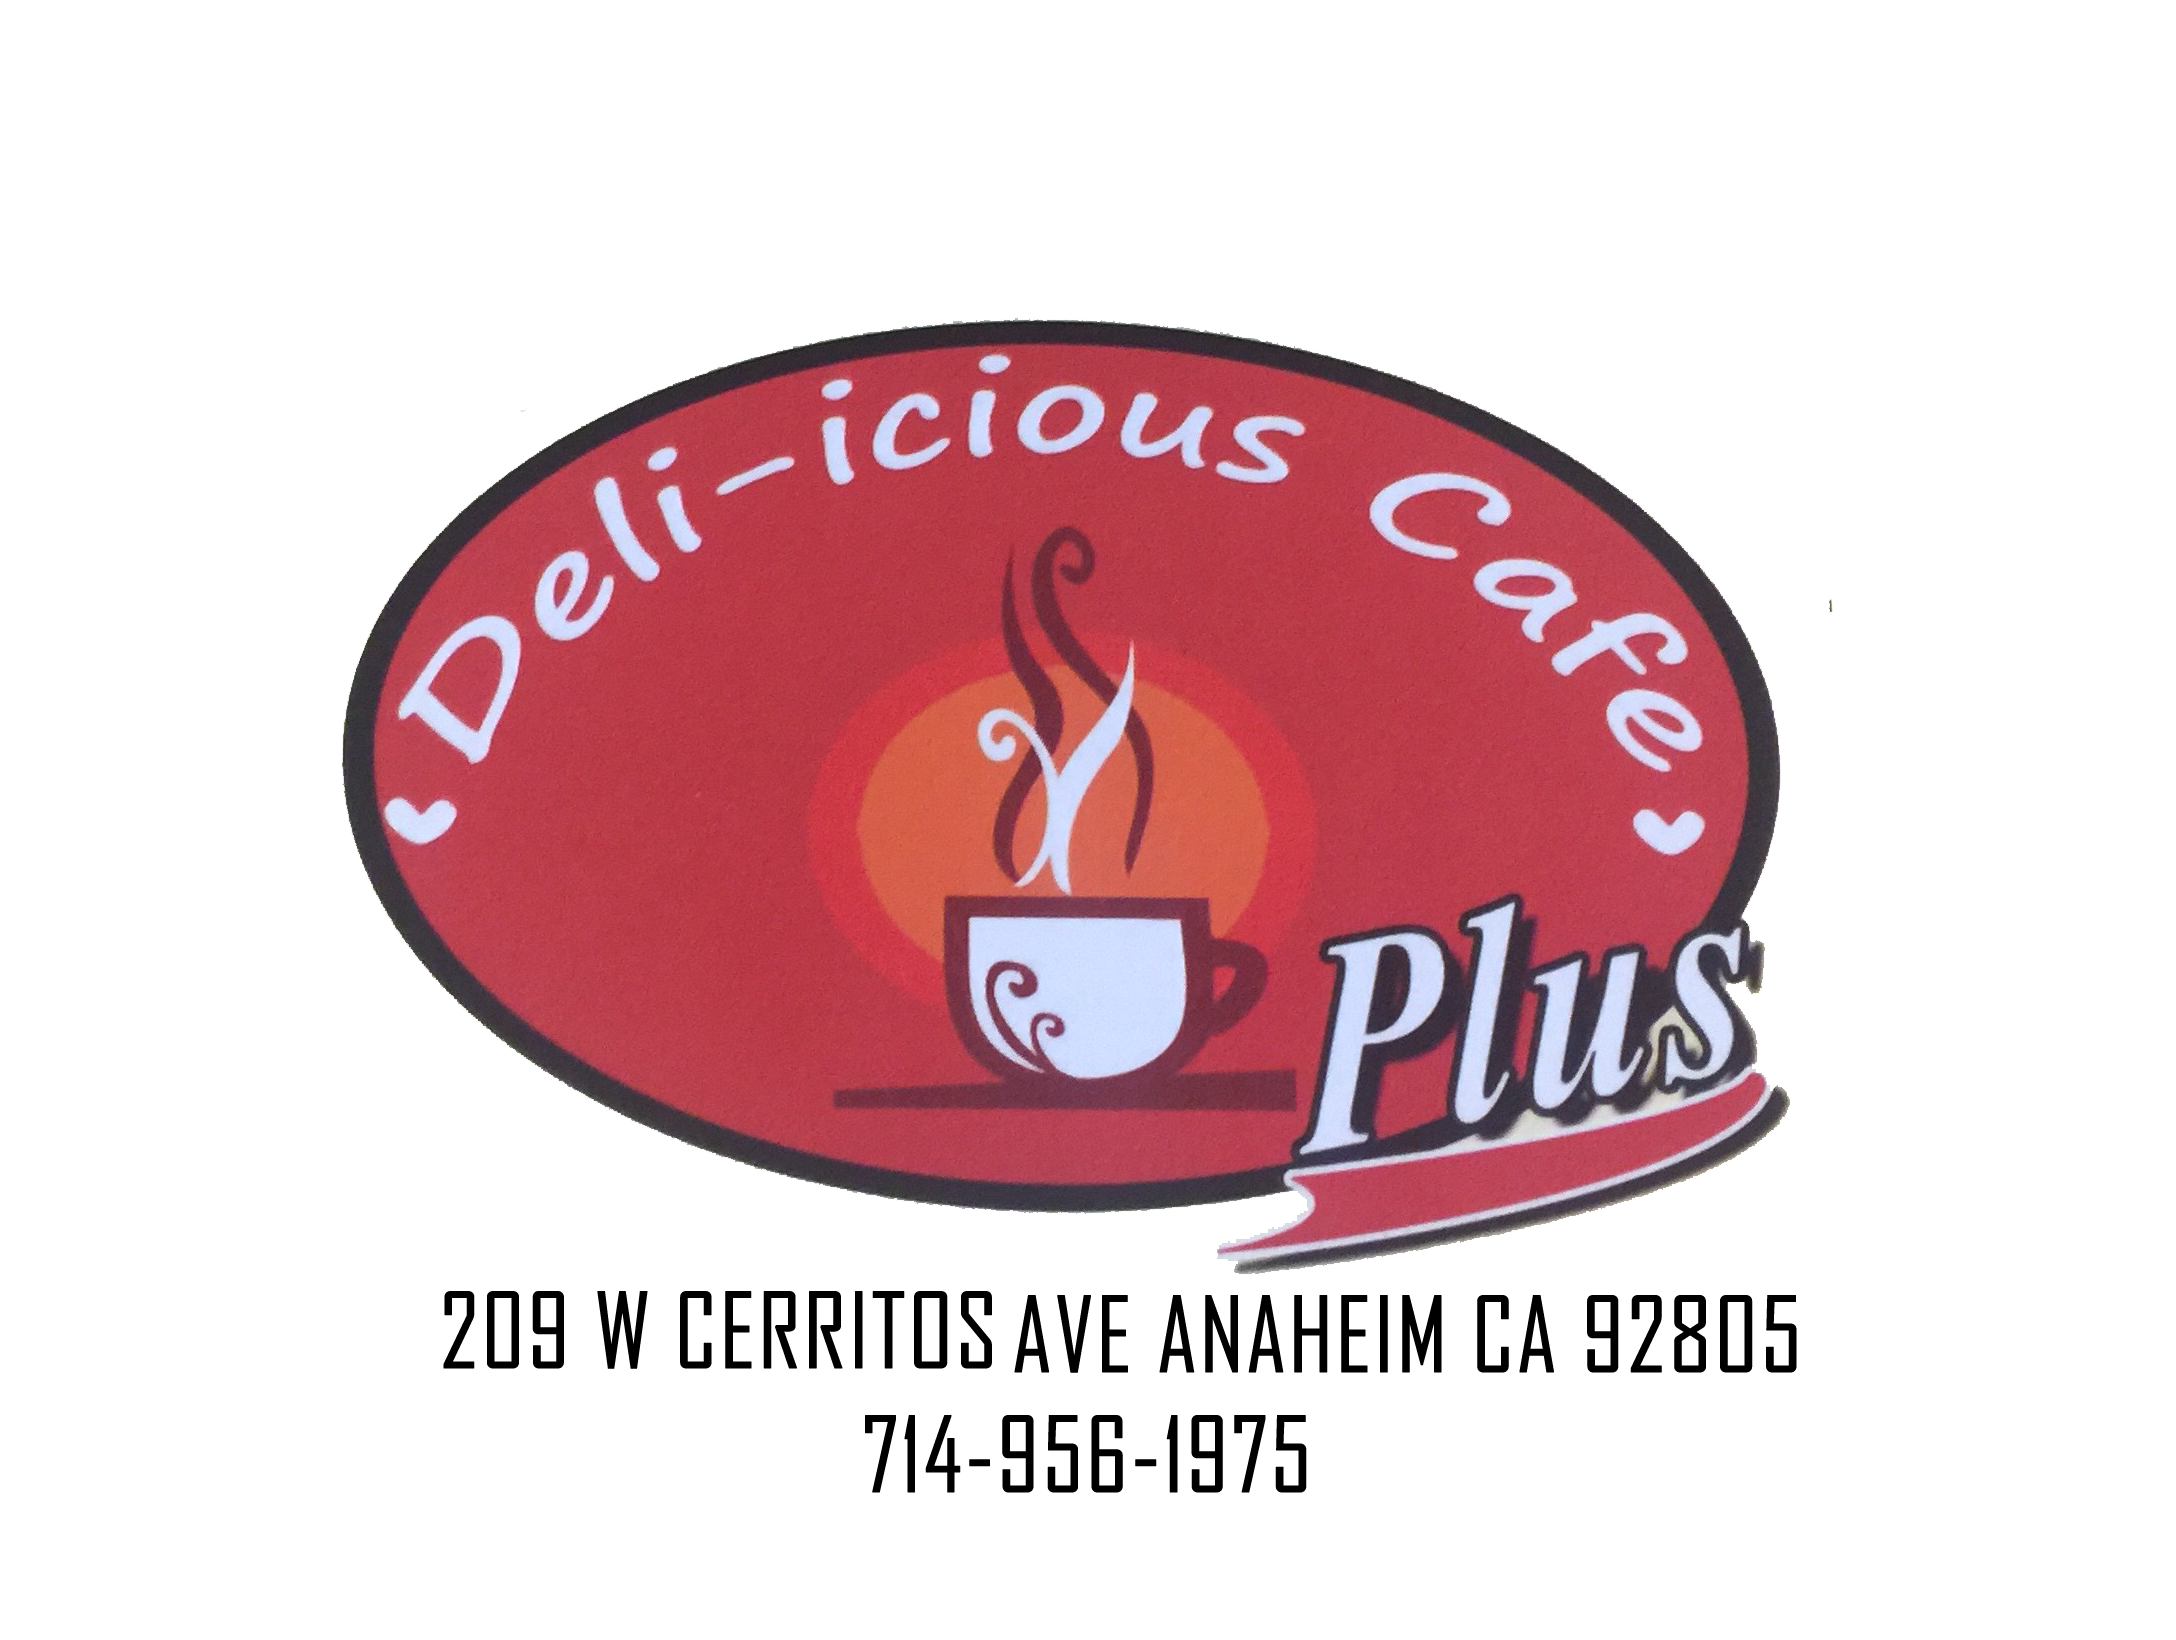 Deli-icious Cafe